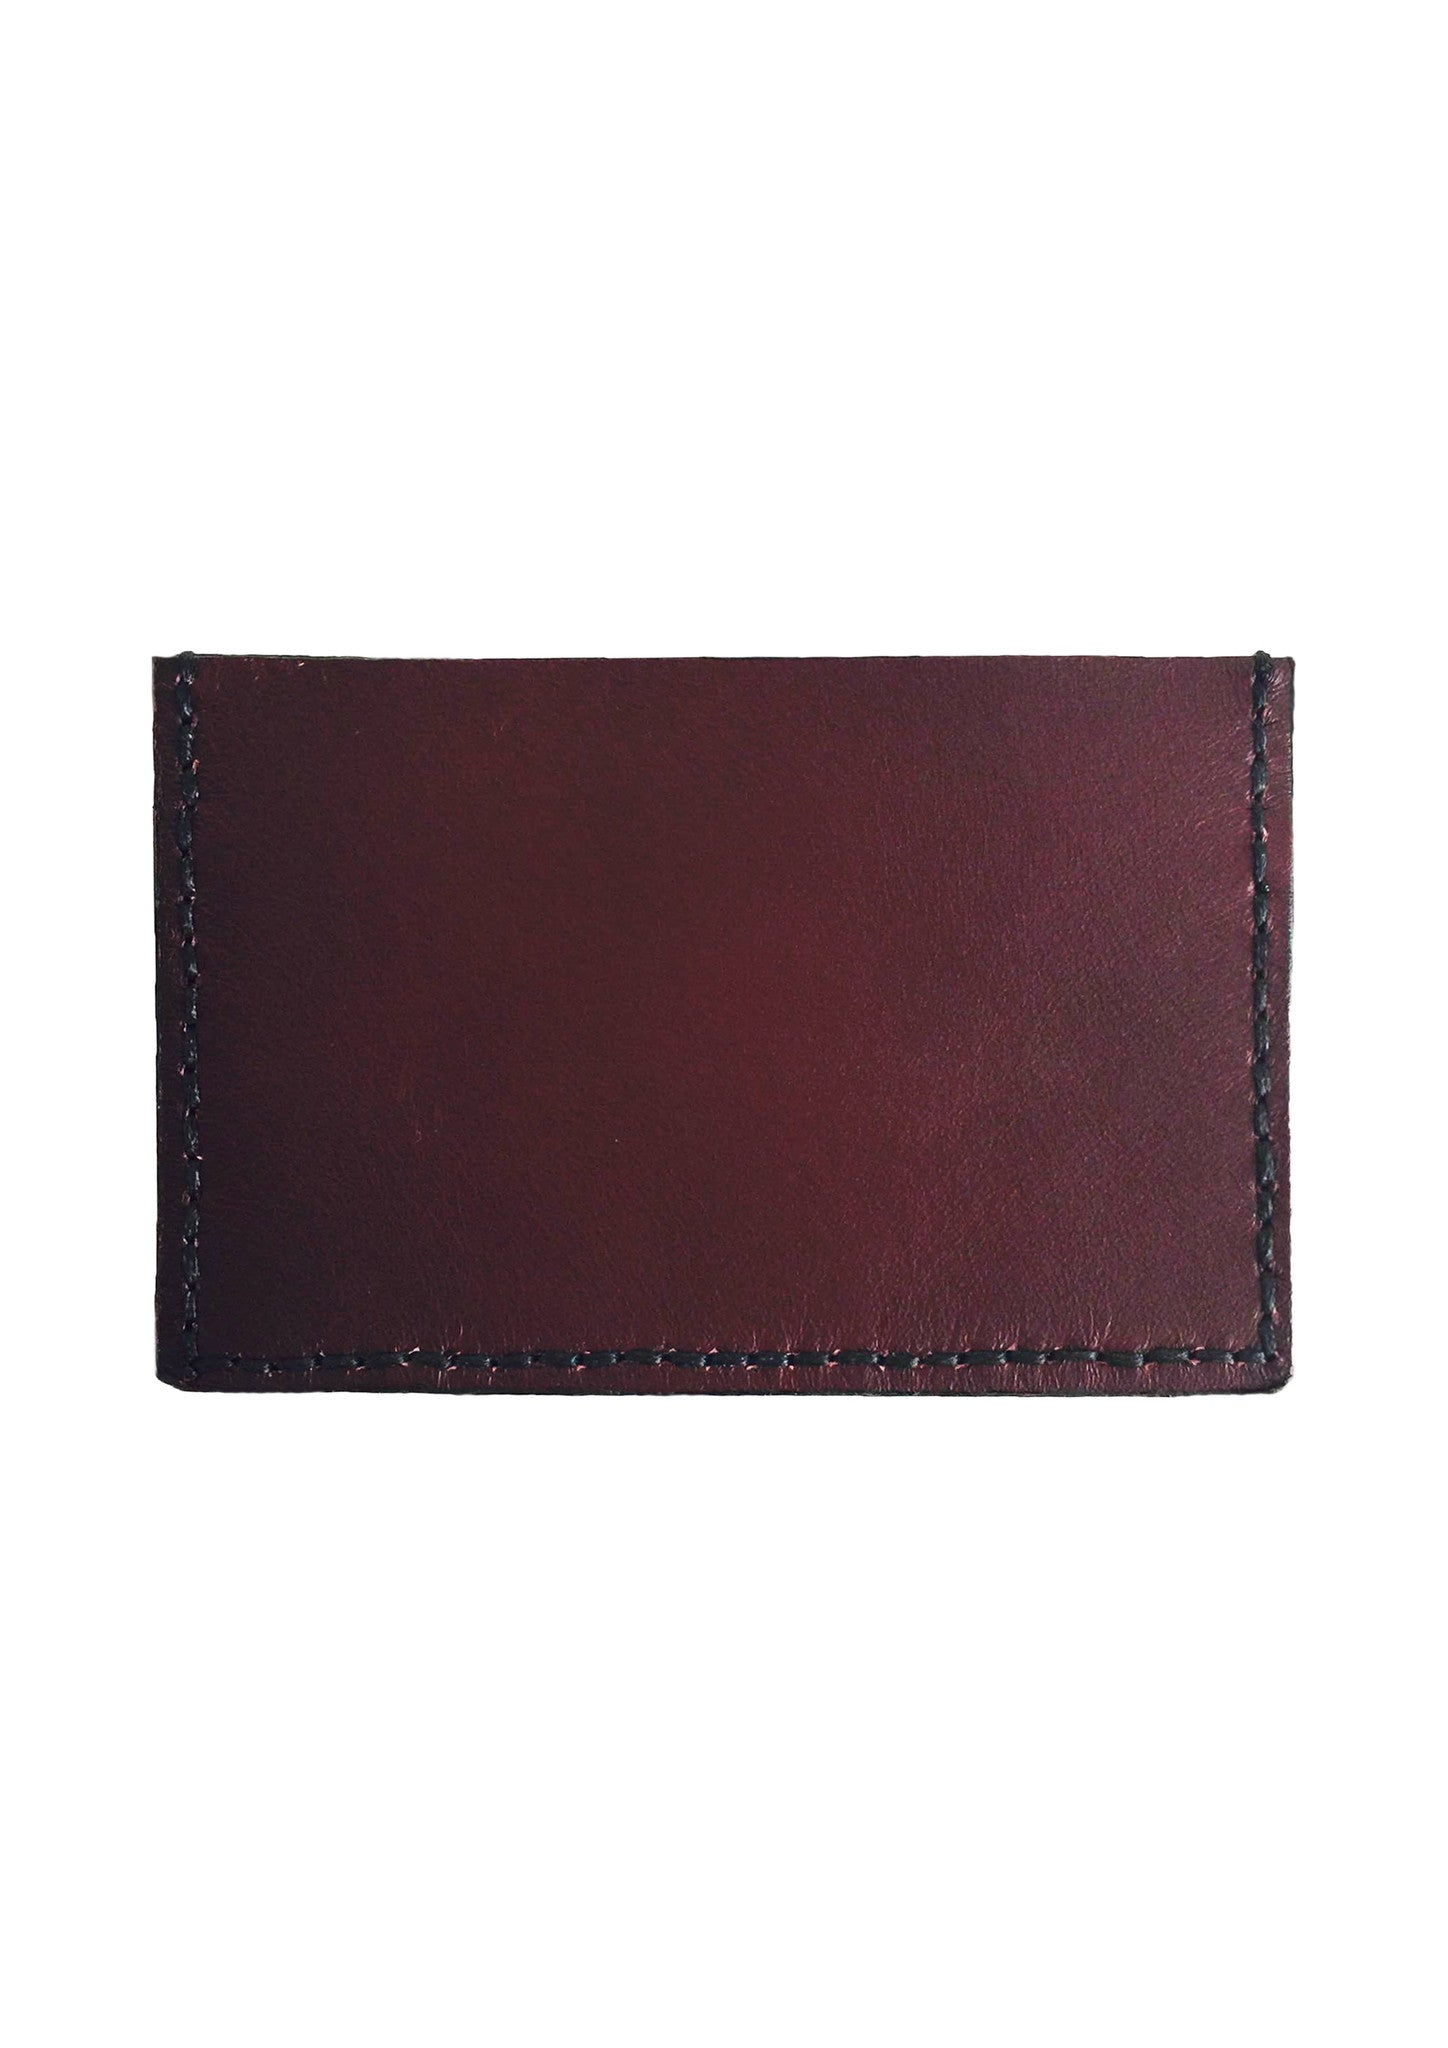 Blue & Brown Cardholder